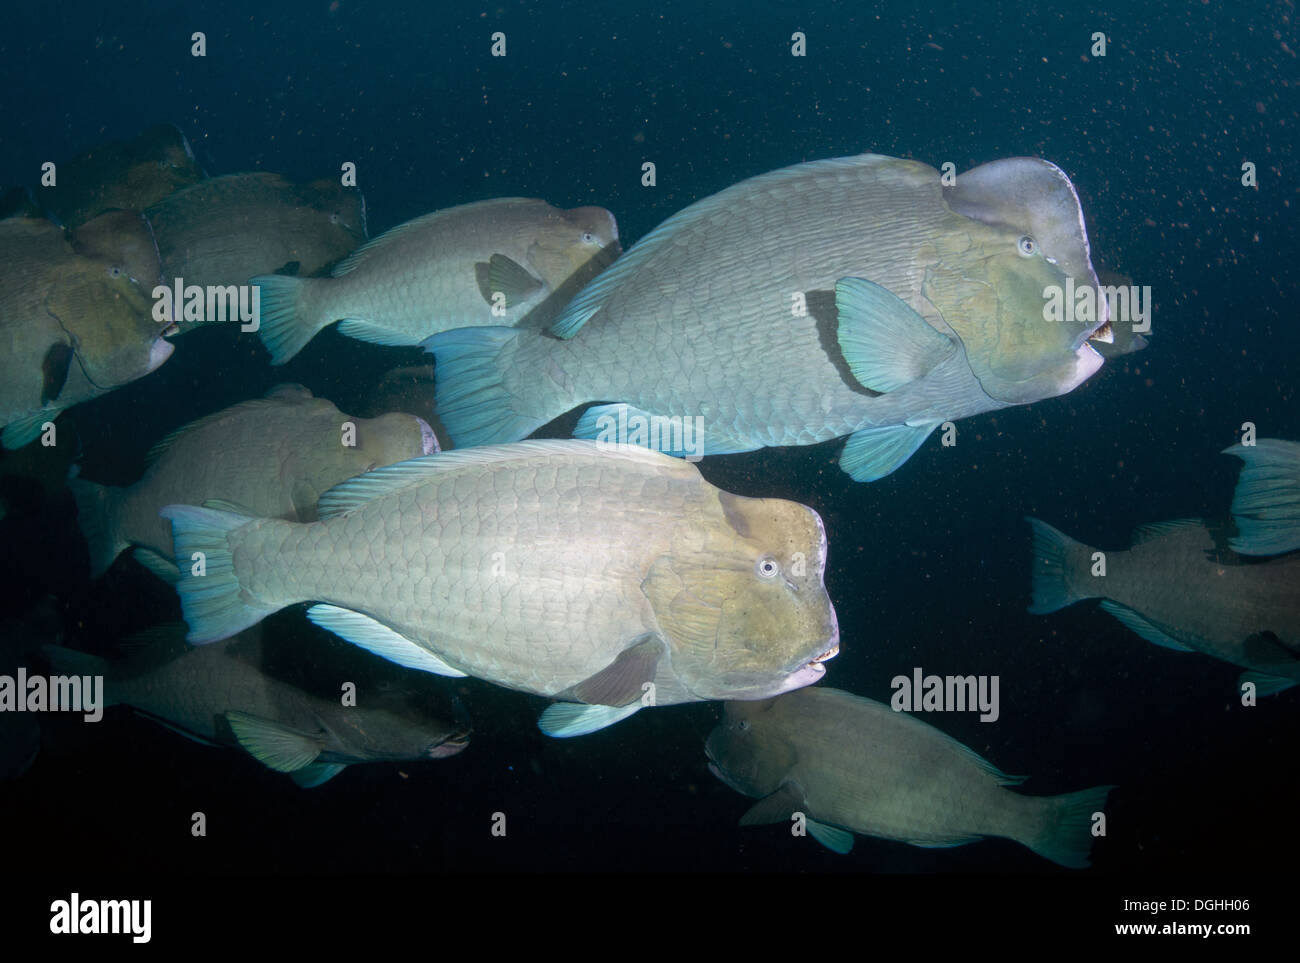 Bumphead Parrotfish (Bolbometopon muricatum) adults shoal